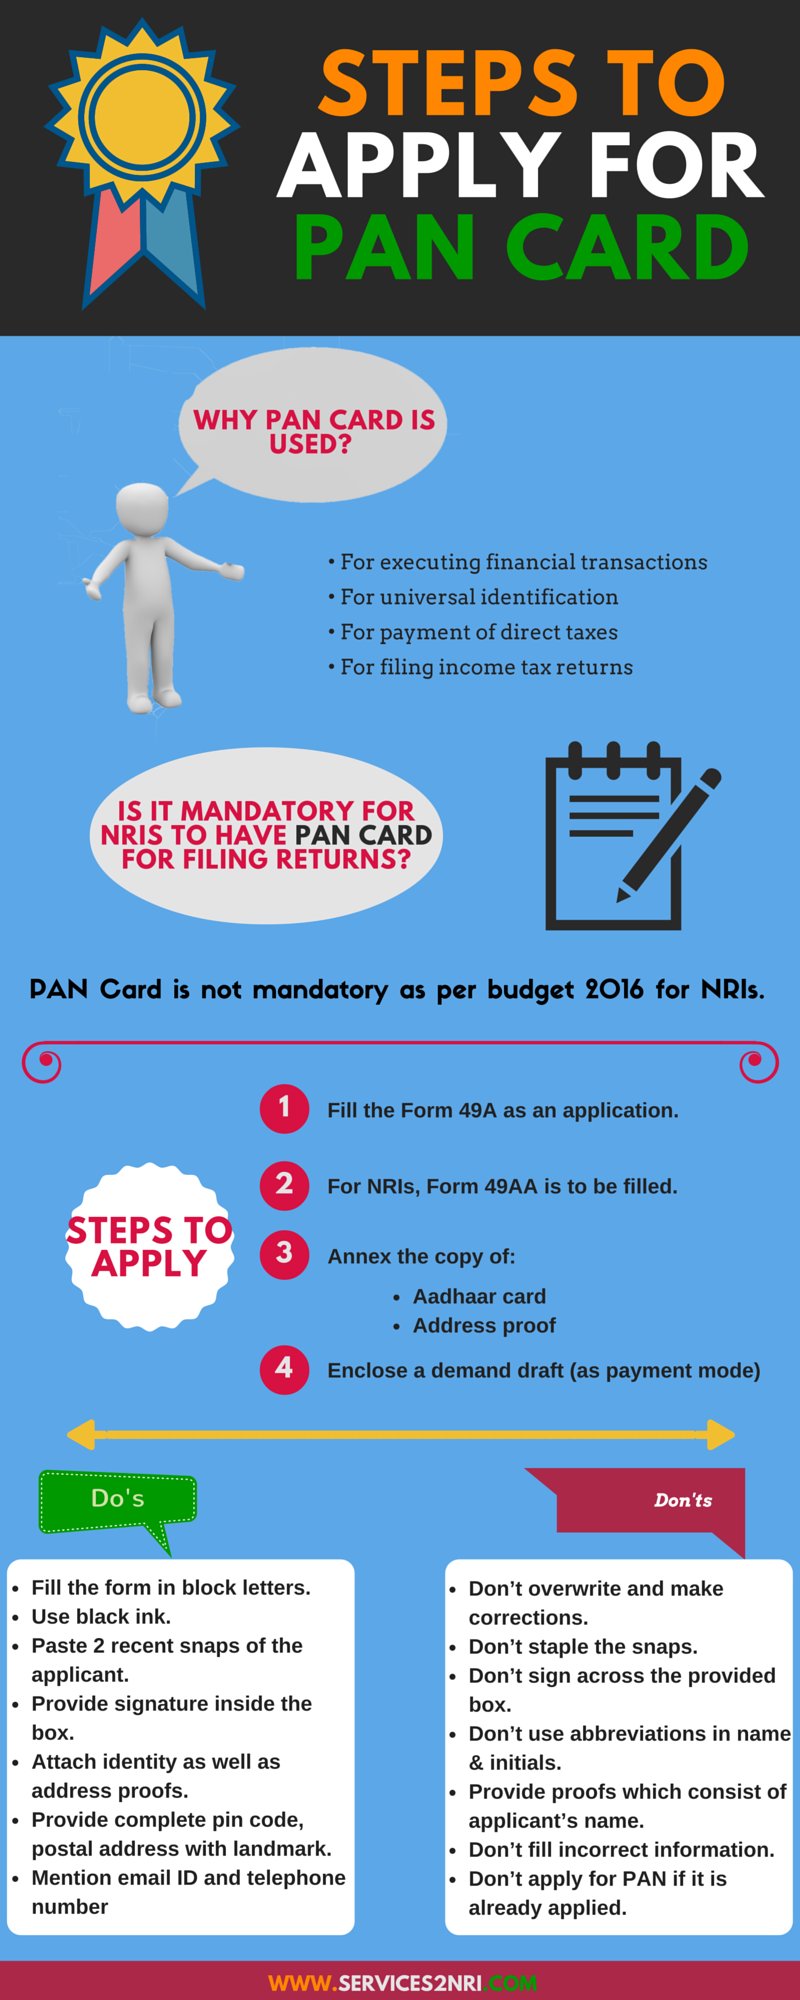 How to apply for a Nris Pan Card